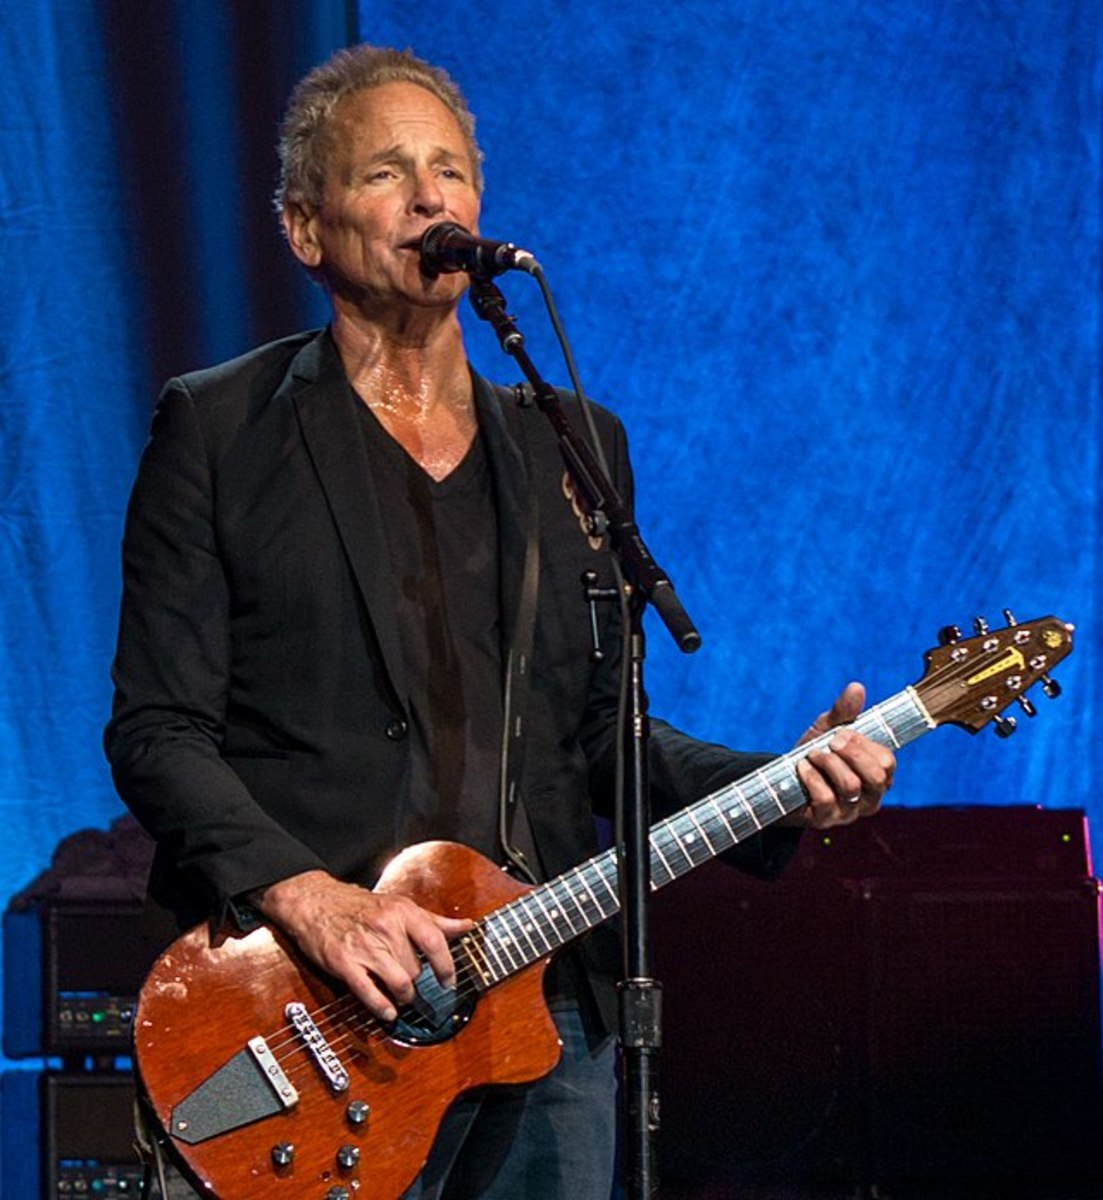 New Single With The Killers Adds To Long List Of Lindsey Buckingham Collaborations